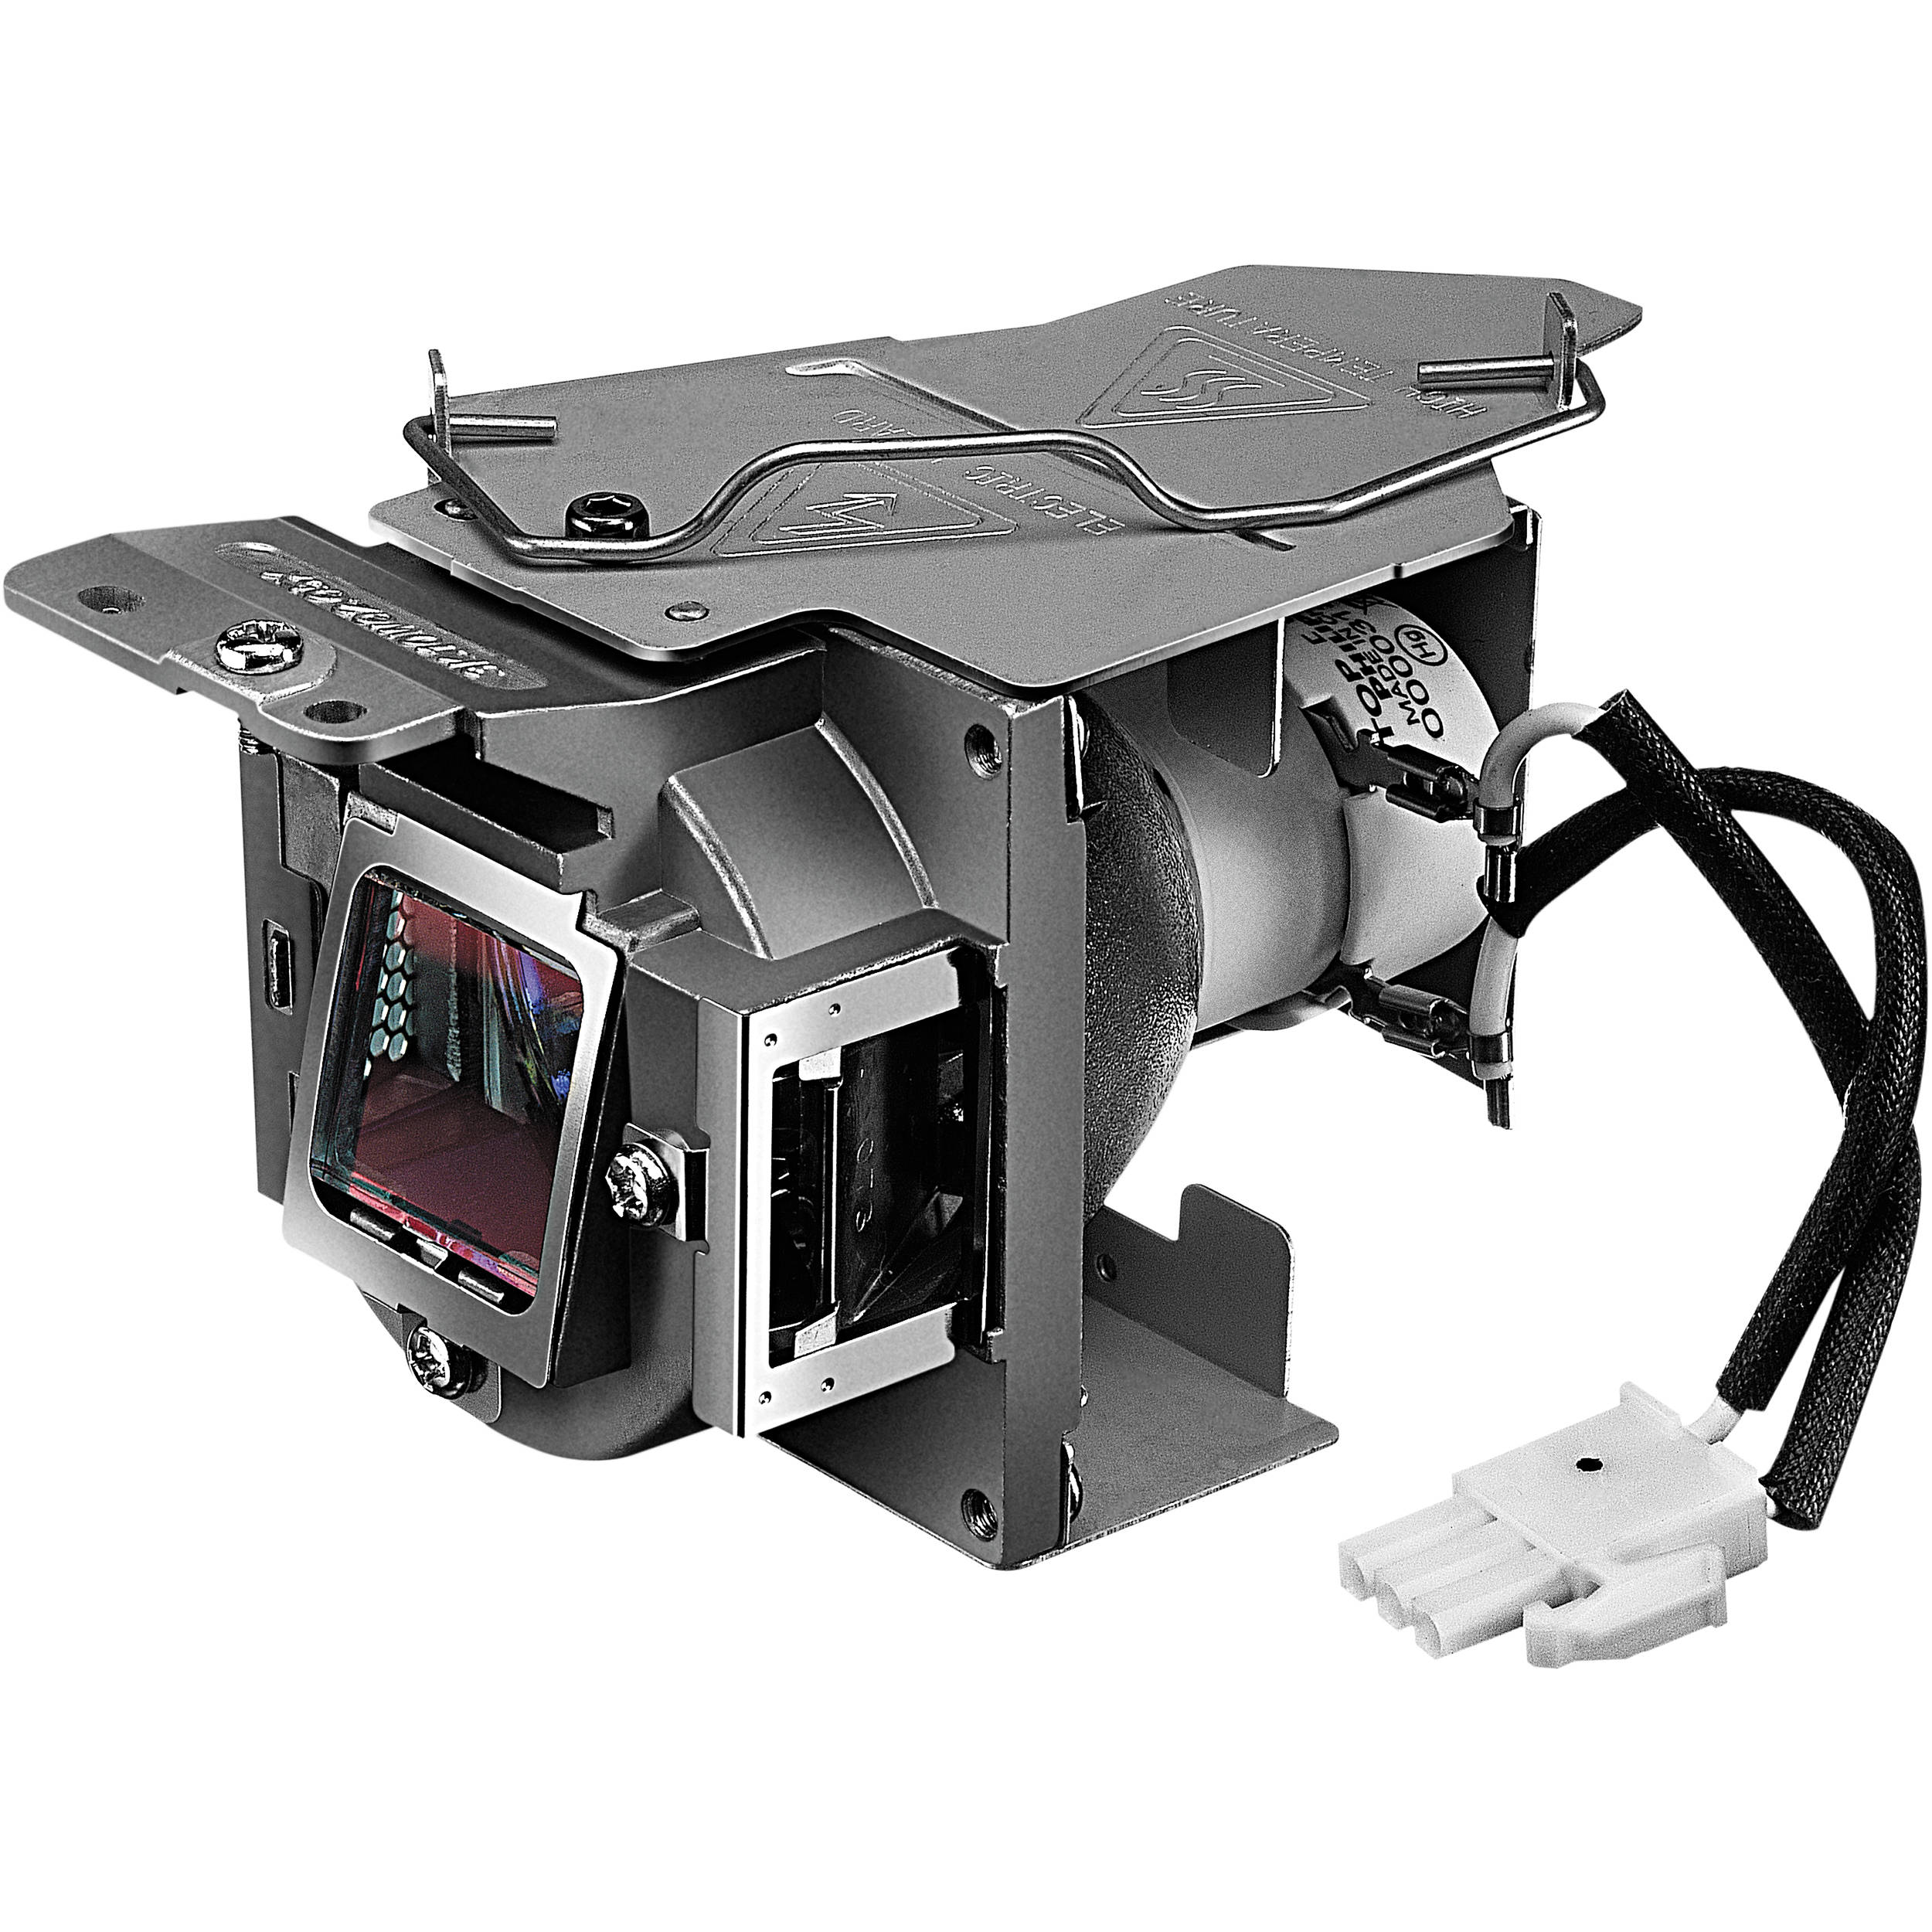 BenQ Replacement Lamp for W770ST 5J.J7K05.001 B&H Photo Video